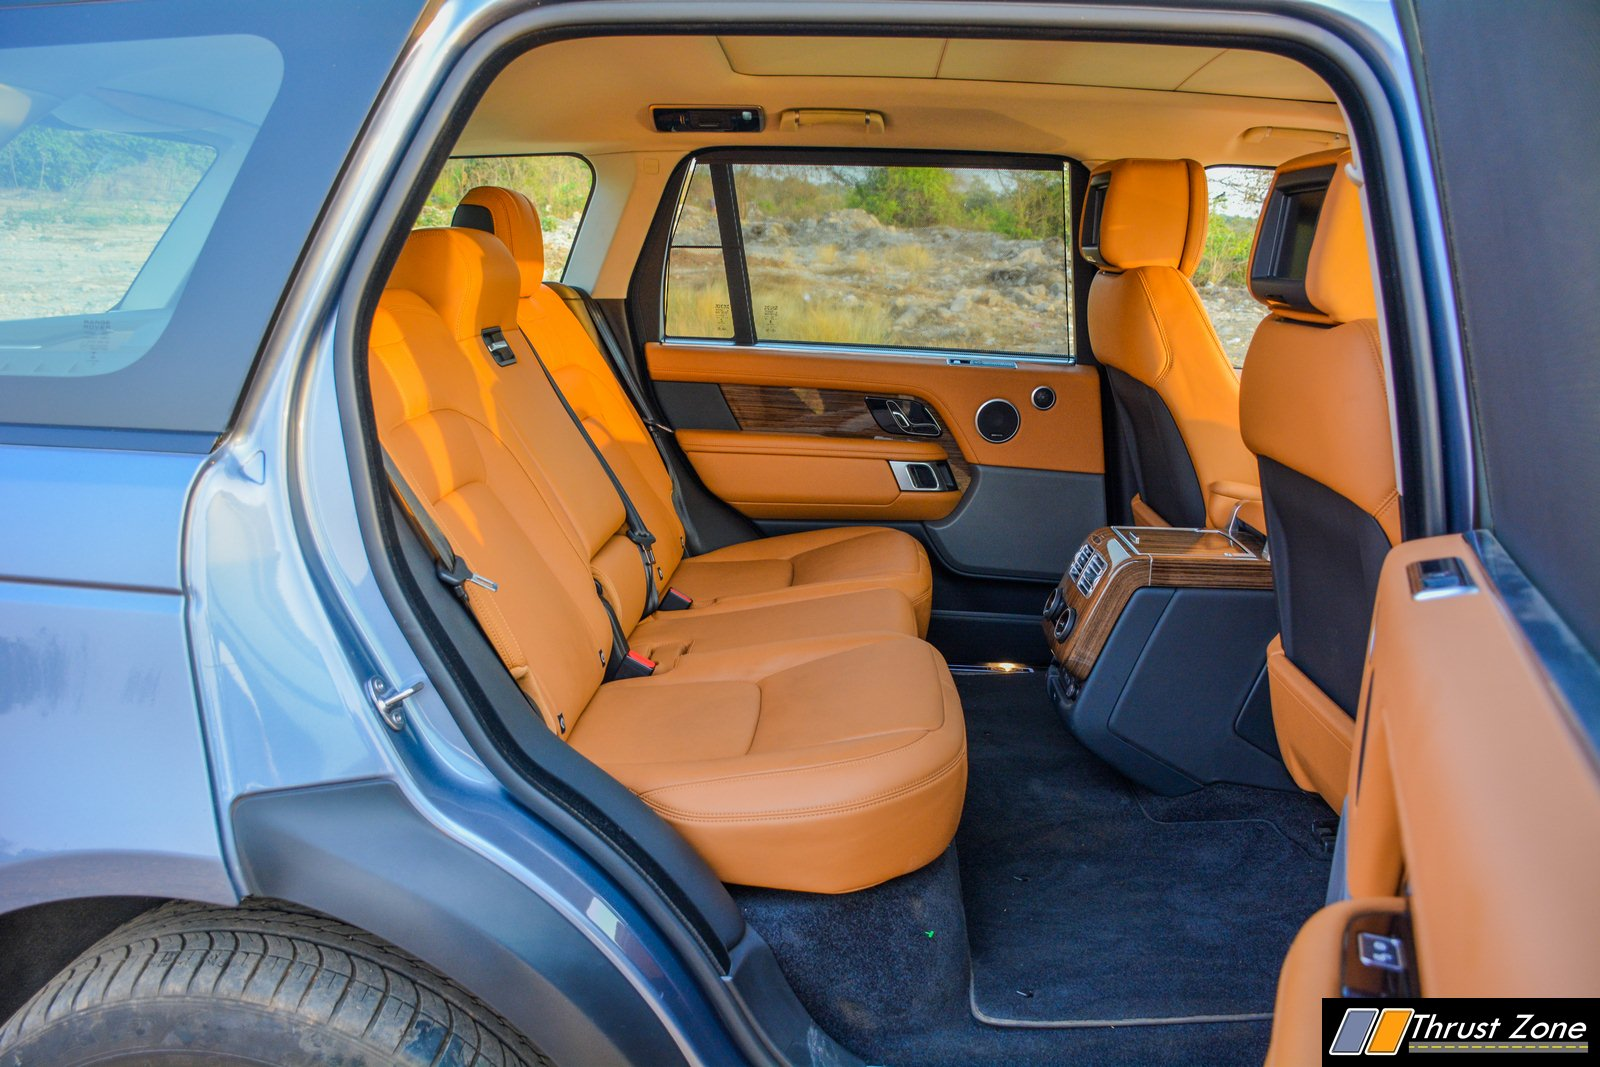 https://www.thrustzone.com/wp-content/uploads/2019/05/2019-Range-Rover-India-Diesel-V6-Review-19.jpg